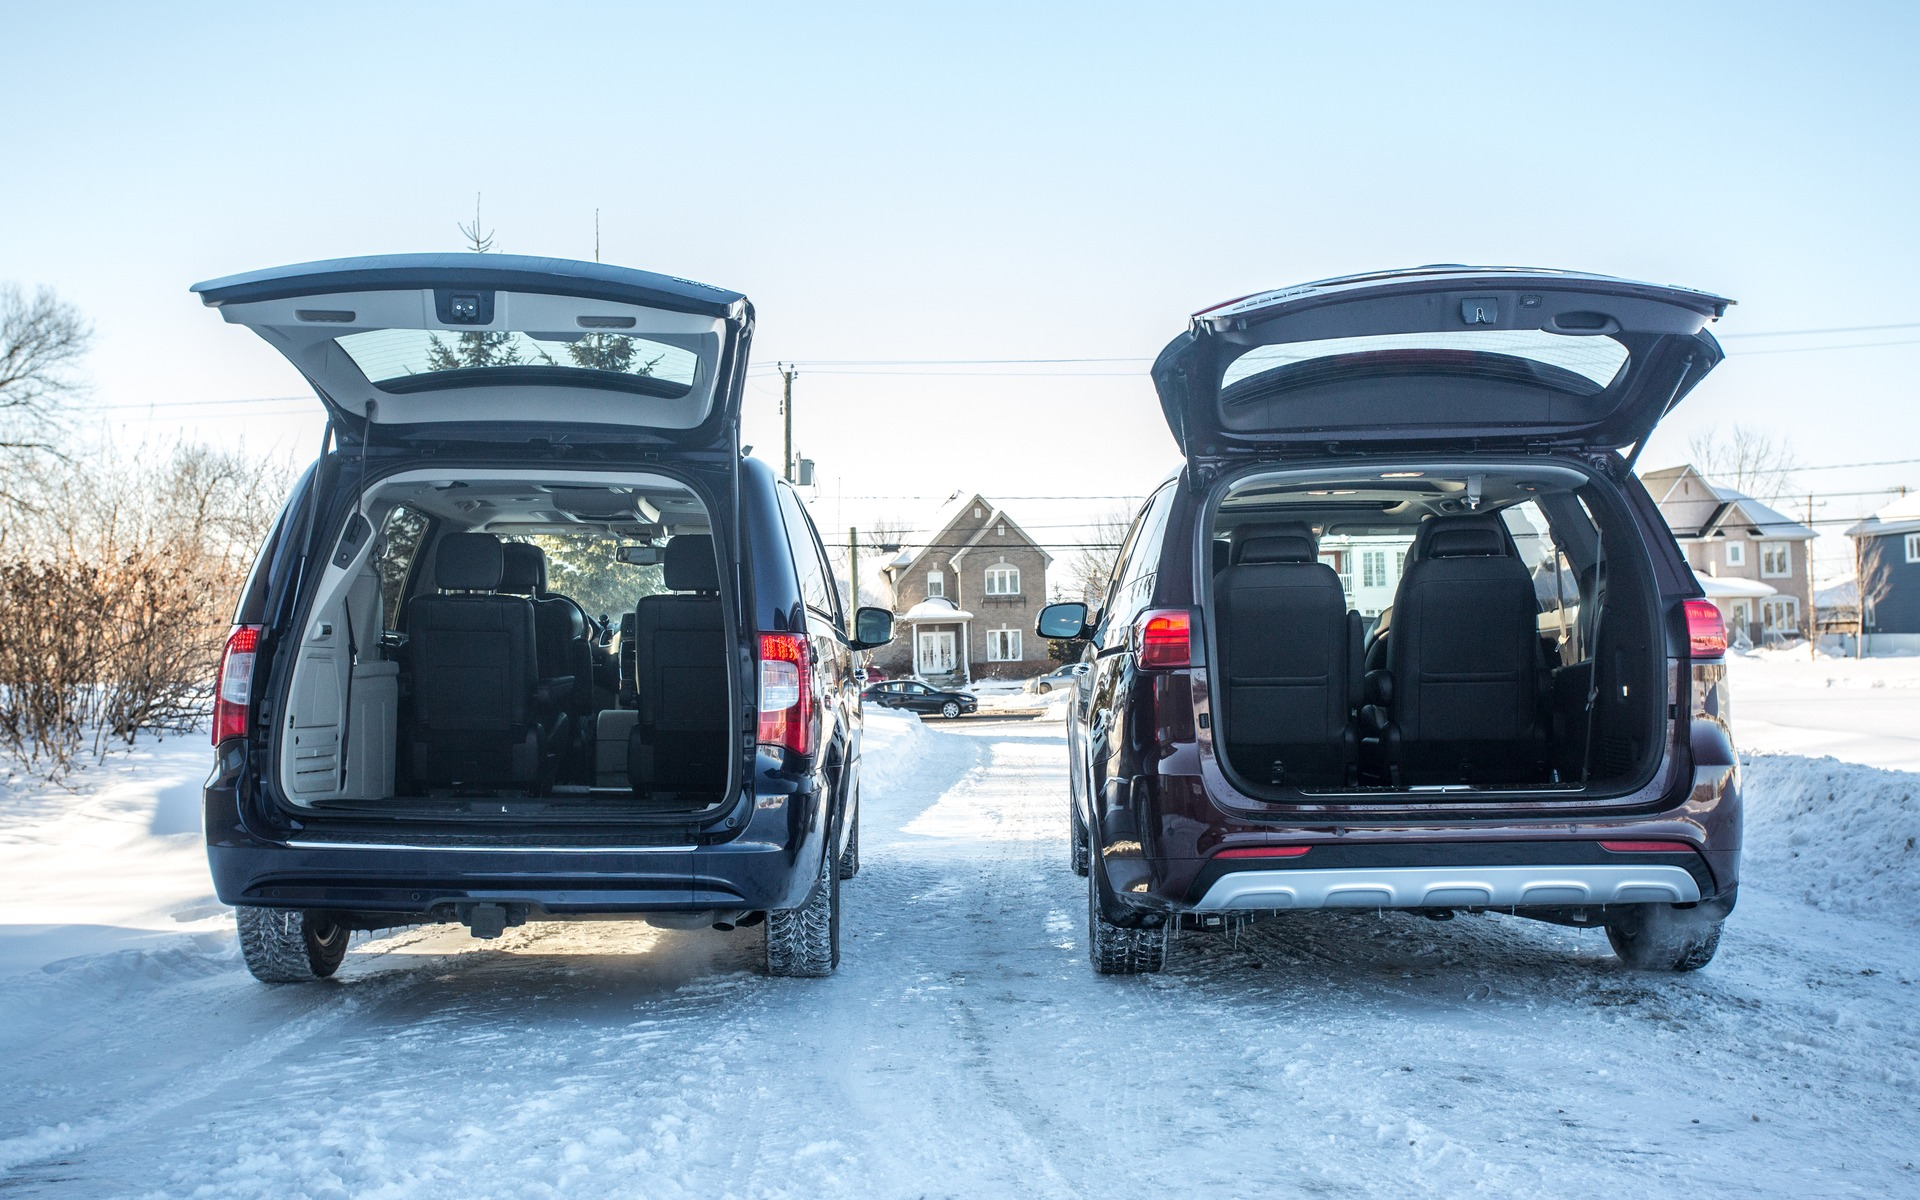 Both come with power liftgates, too.